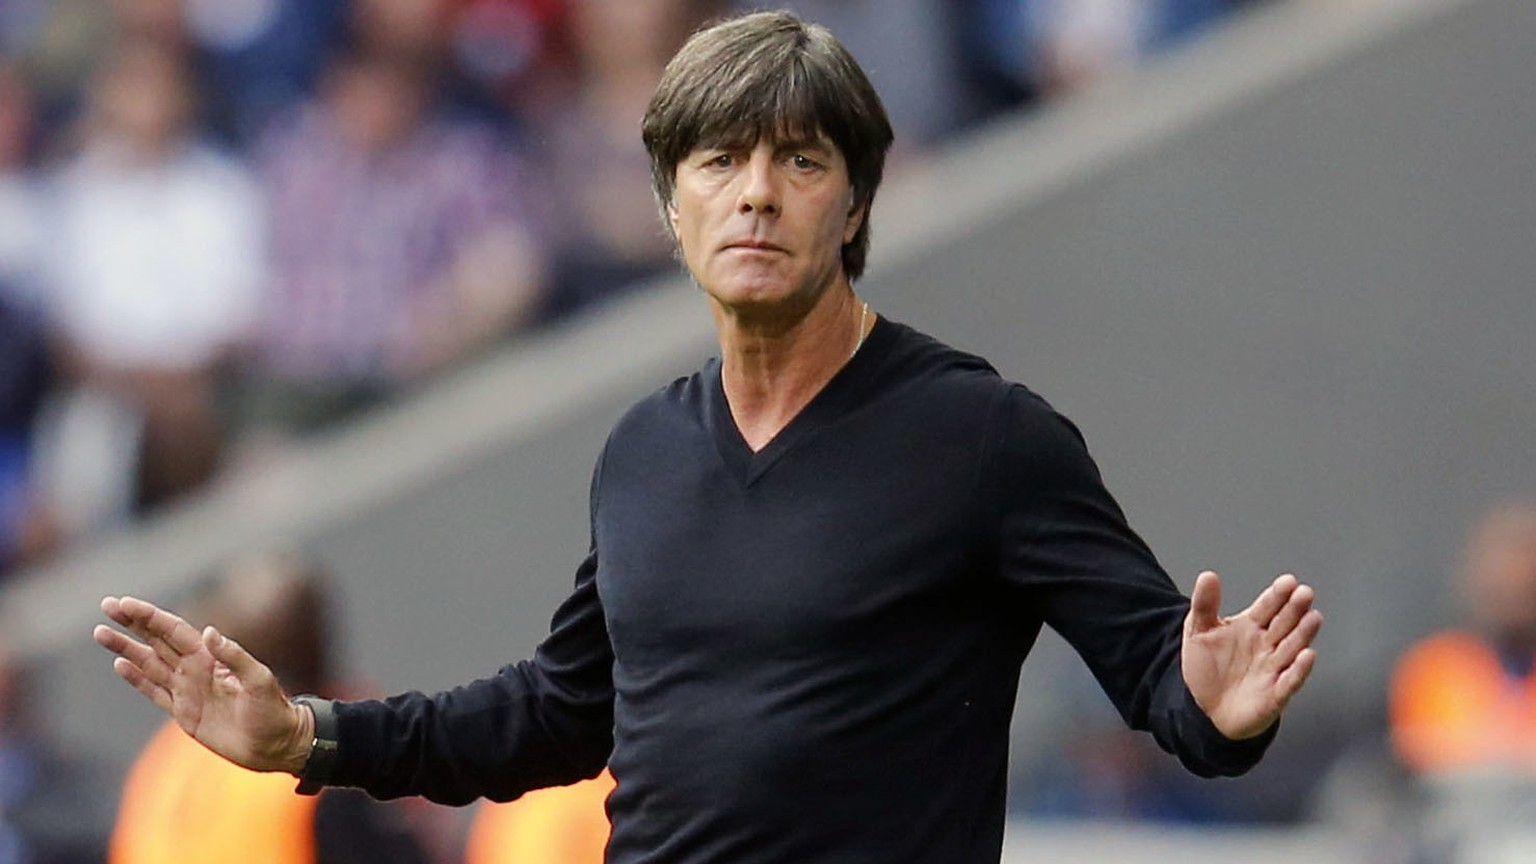 FILE - In this Sunday, June 26, 2016 file photo, Germany coach Joachim Loew gestures during the Euro 2016 round of 16 soccer match between Germany and Slovakia, at the Pierre Mauroy stadium in Villeneuve d'Ascq, near Lille, France. The Confederations Cup soccer tournament might have some fans around the world. If so, they should enjoy this one in Russia while they can. FIFA's eight-nation World Cup rehearsal for the host country, six continental champions and World Cup title-holder is no sure thing to survive for another edition.